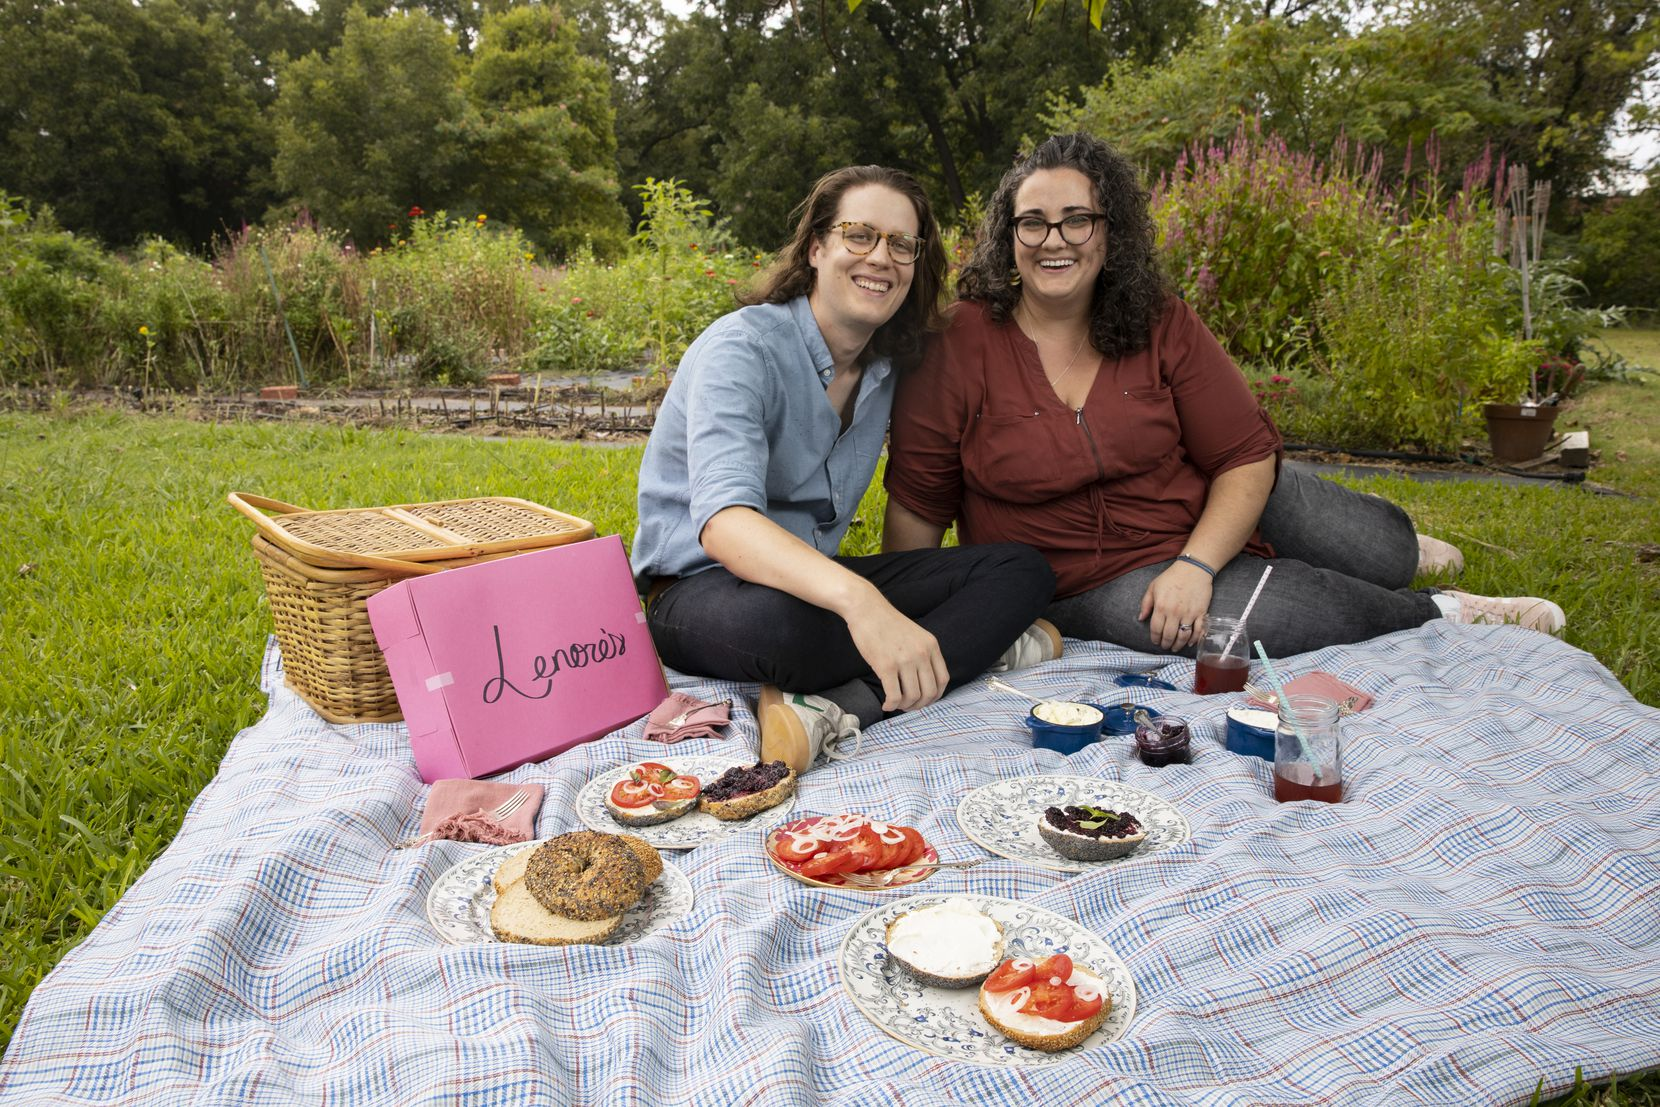 Seth and Jessica Brammer of Lenore's Bagels have a picnic at Bishop Hill Farm Flowers in Coppell.